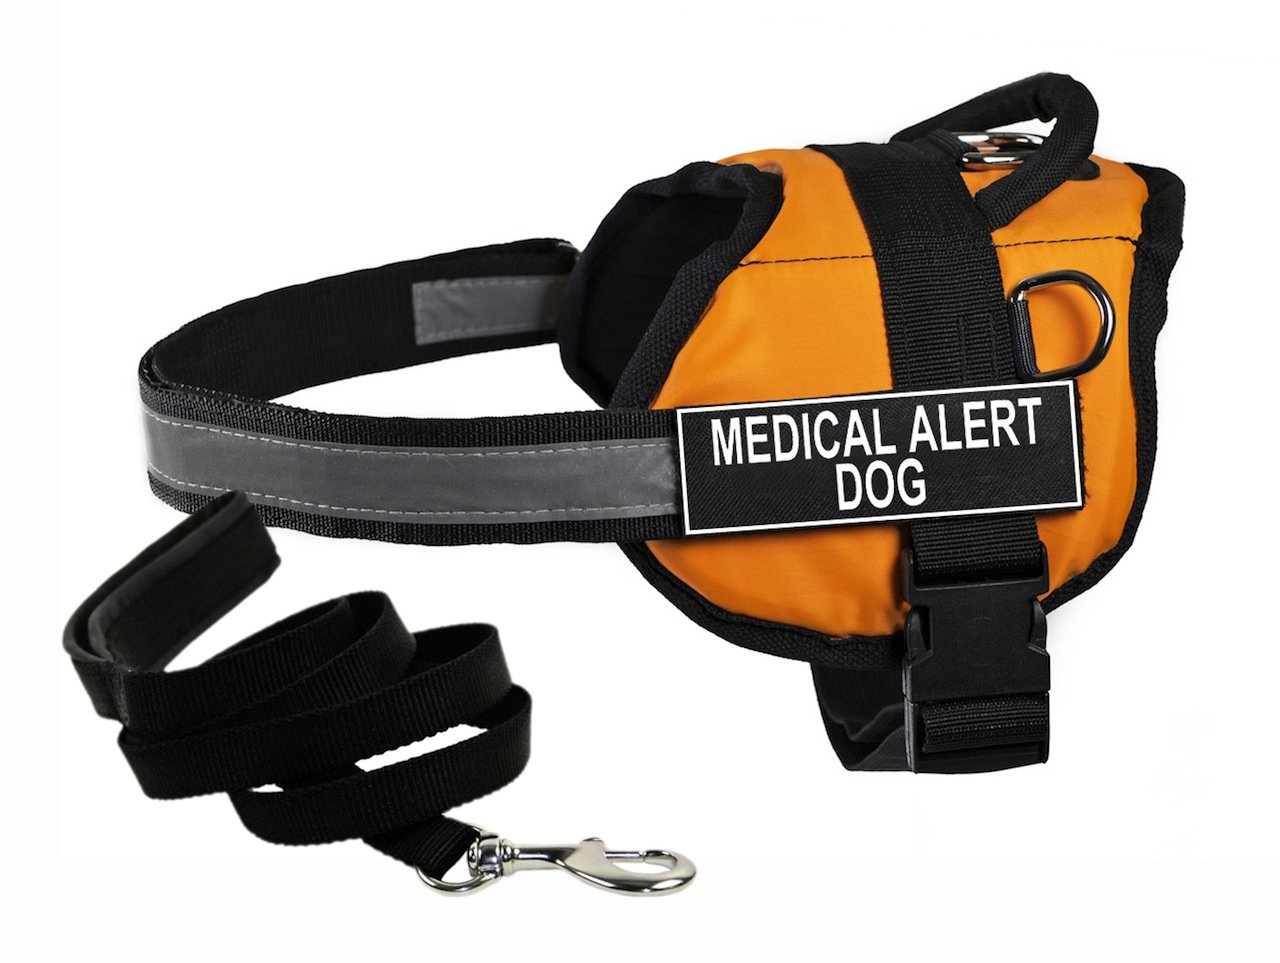 Dean & Tyler's DT Works orange Medical Alert Dog  Harness with, X-Small, and Black 6 ft Padded Puppy Leash.